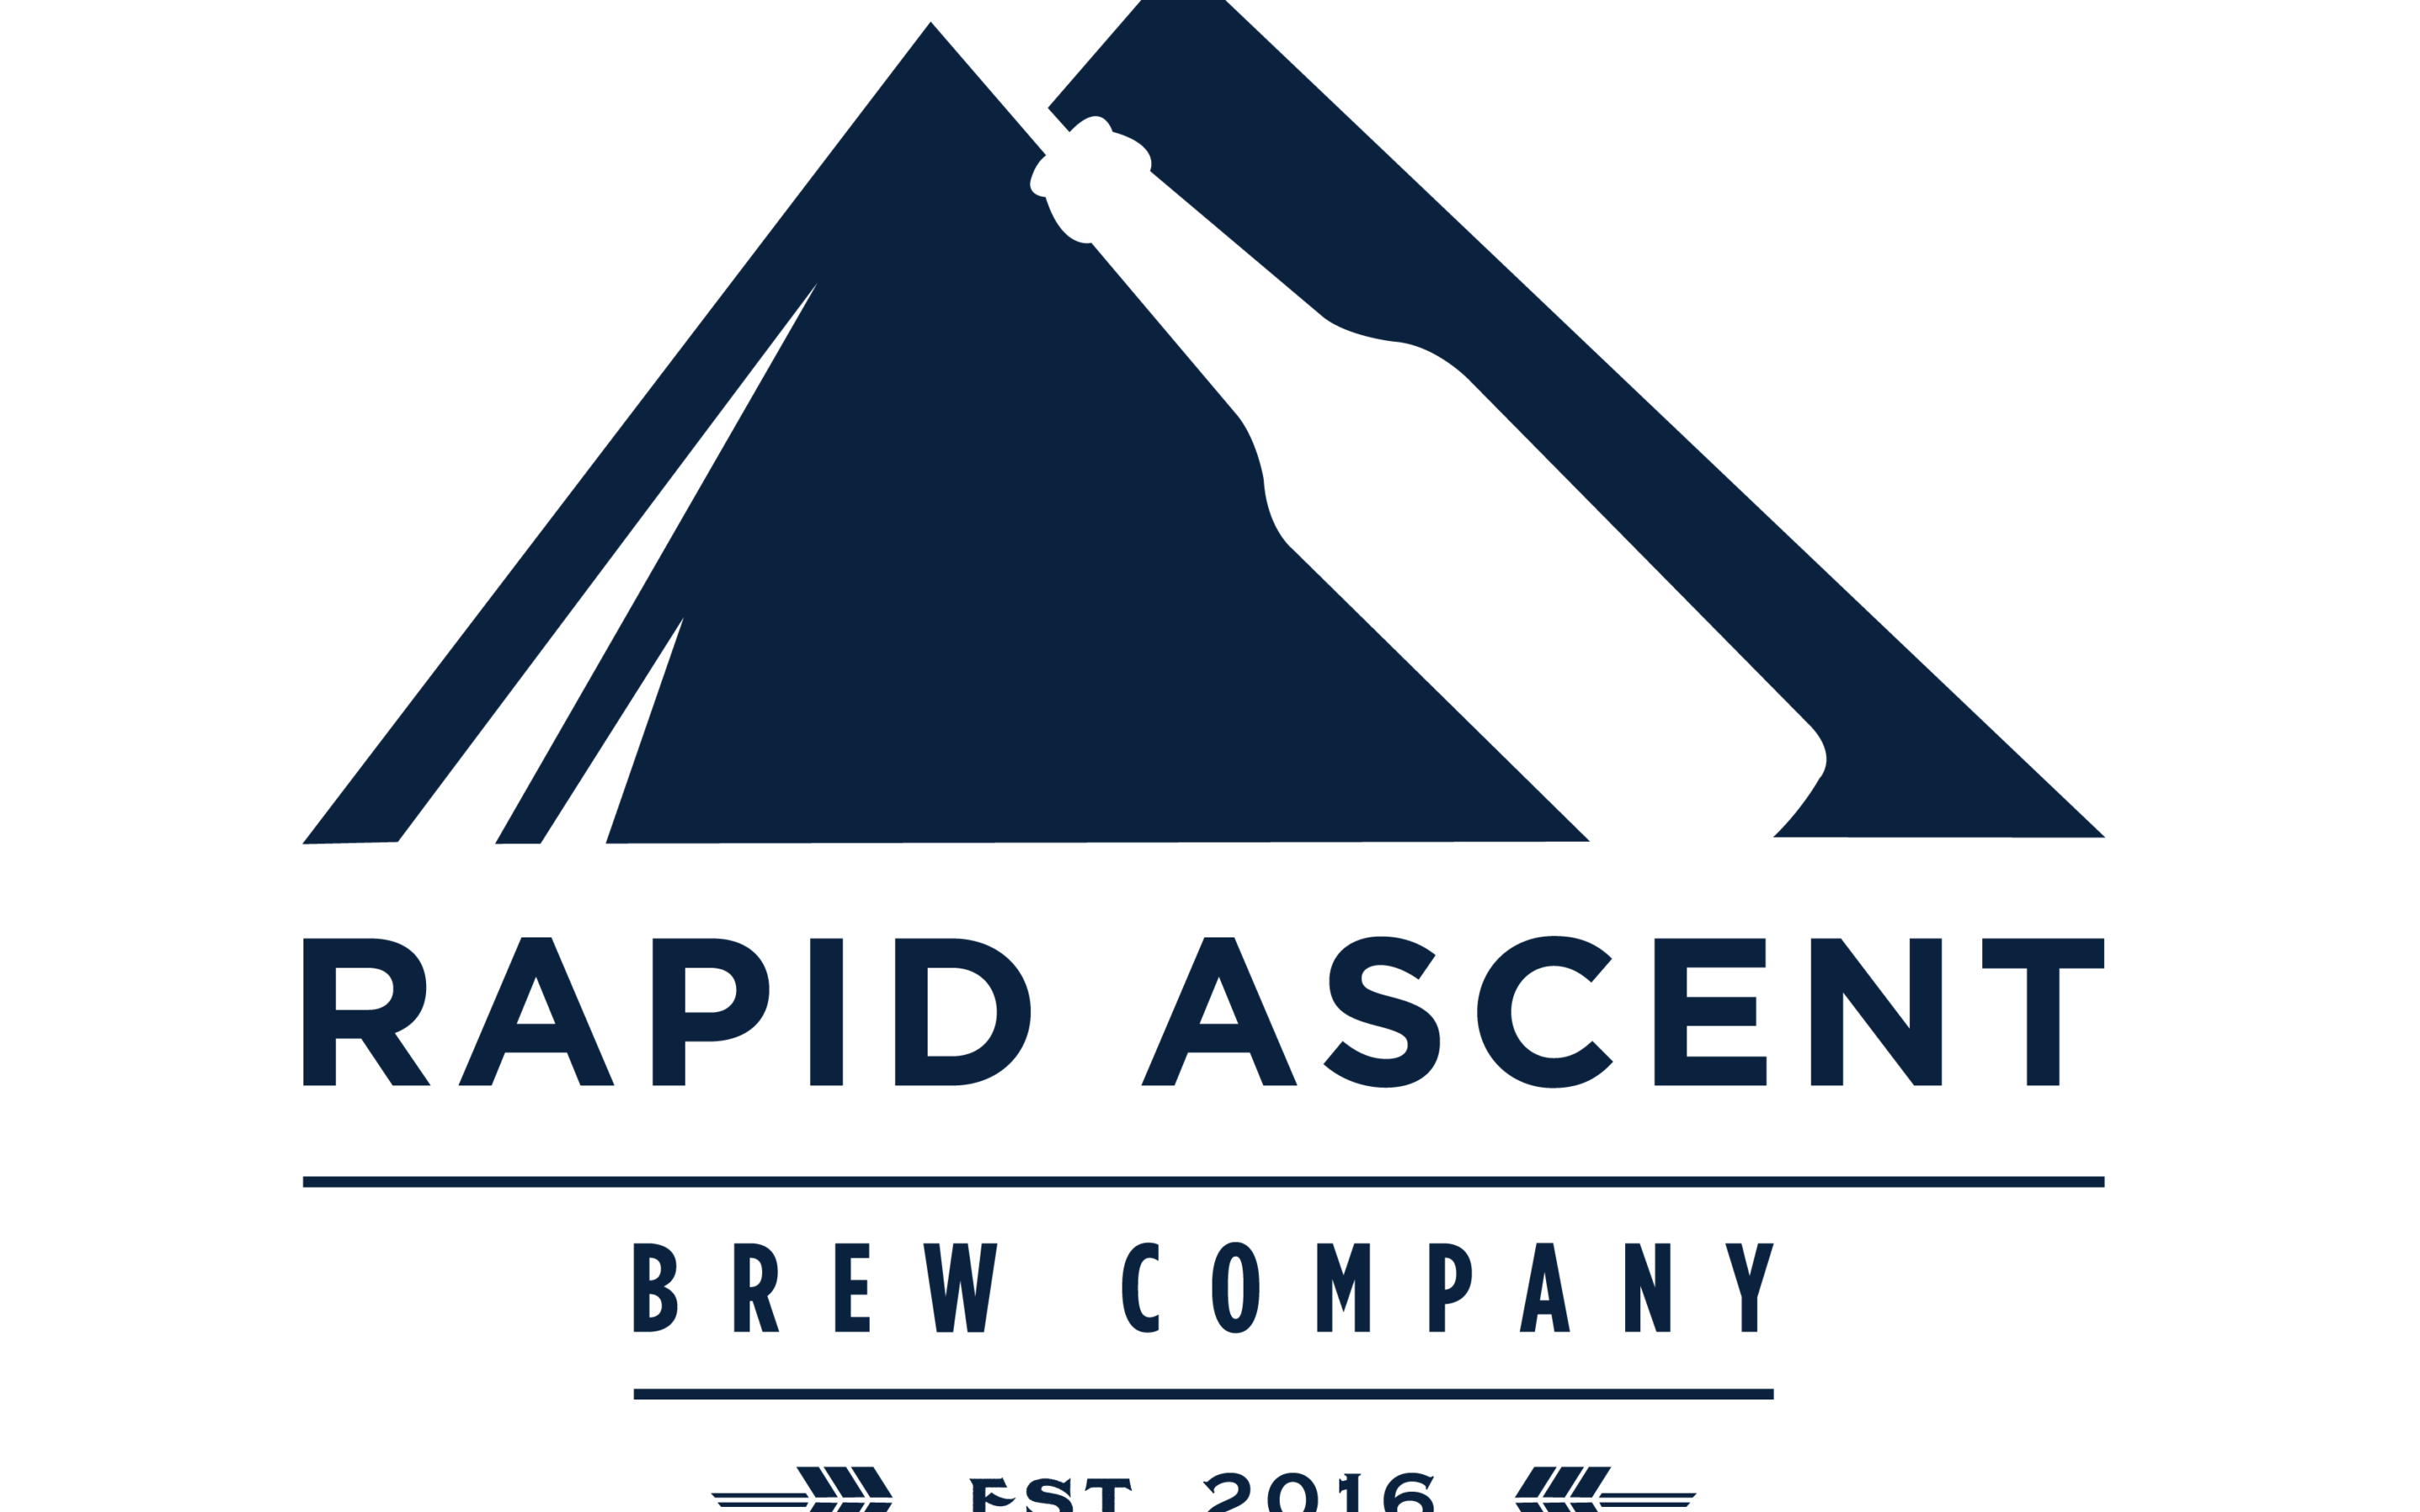 Rapid Ascent Brewing Company